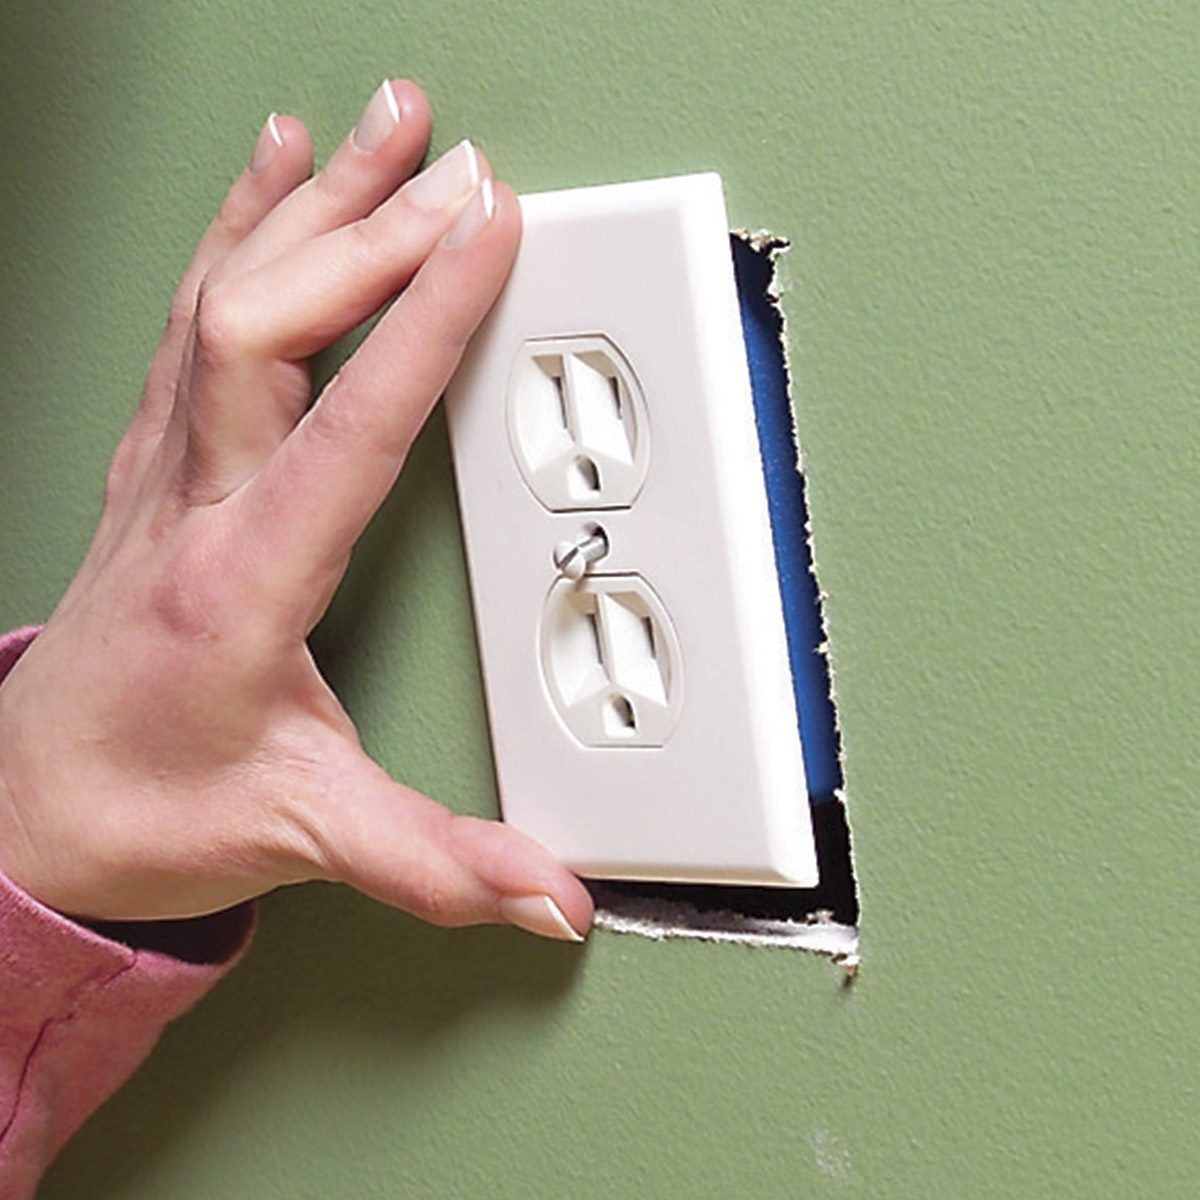 Wiring A Switch And Outlet The Safe Easy Way Family Handyman Common Mistakes 3 Oversize Plates Hide